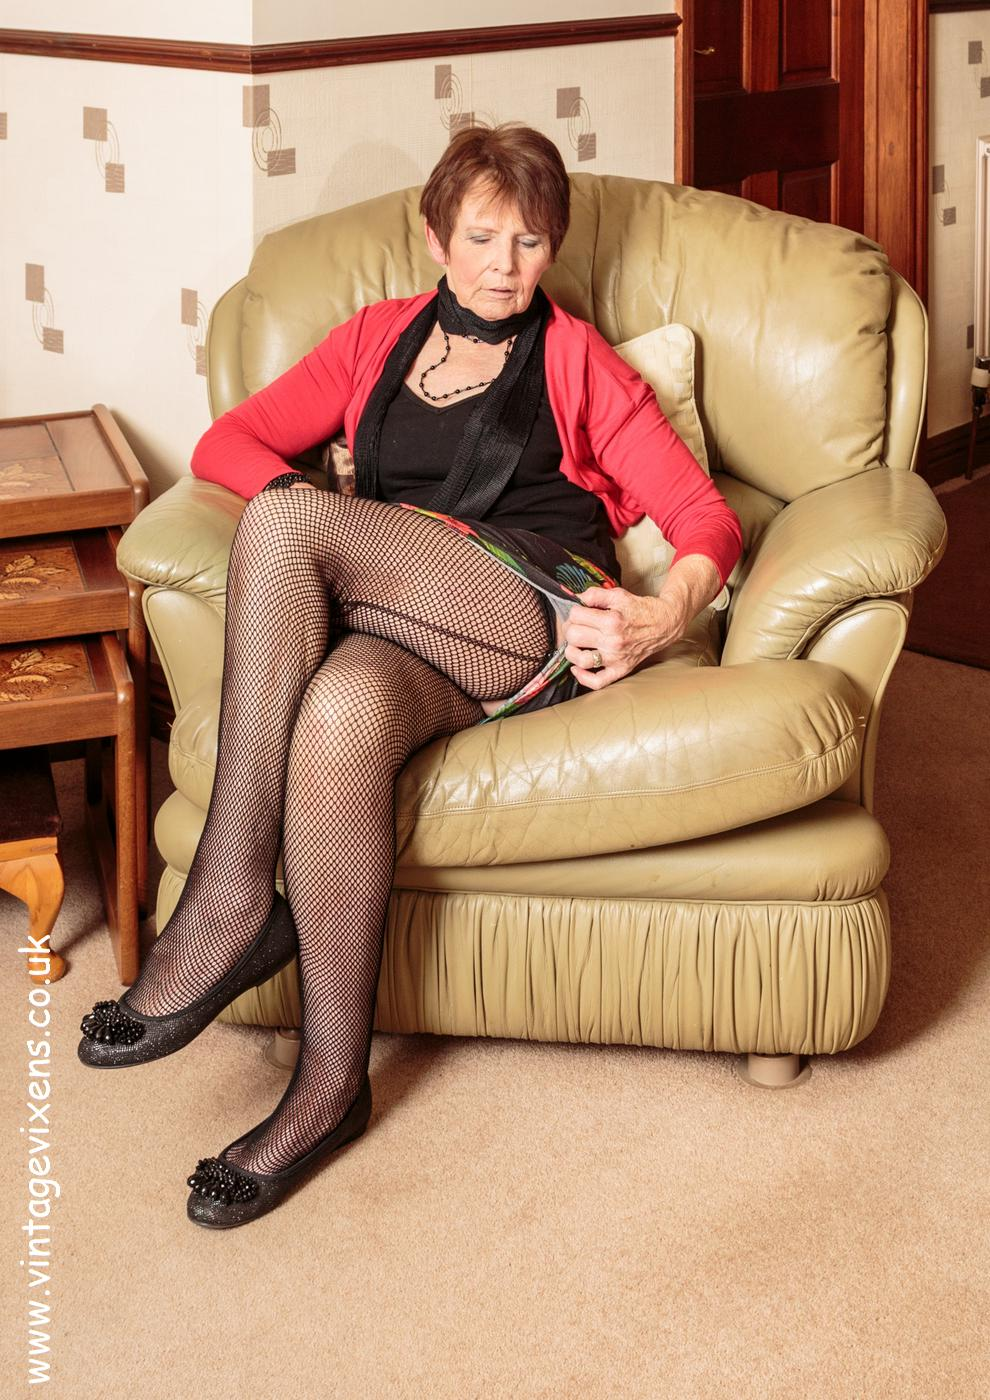 Archive Of Old Women Older Woman-8754